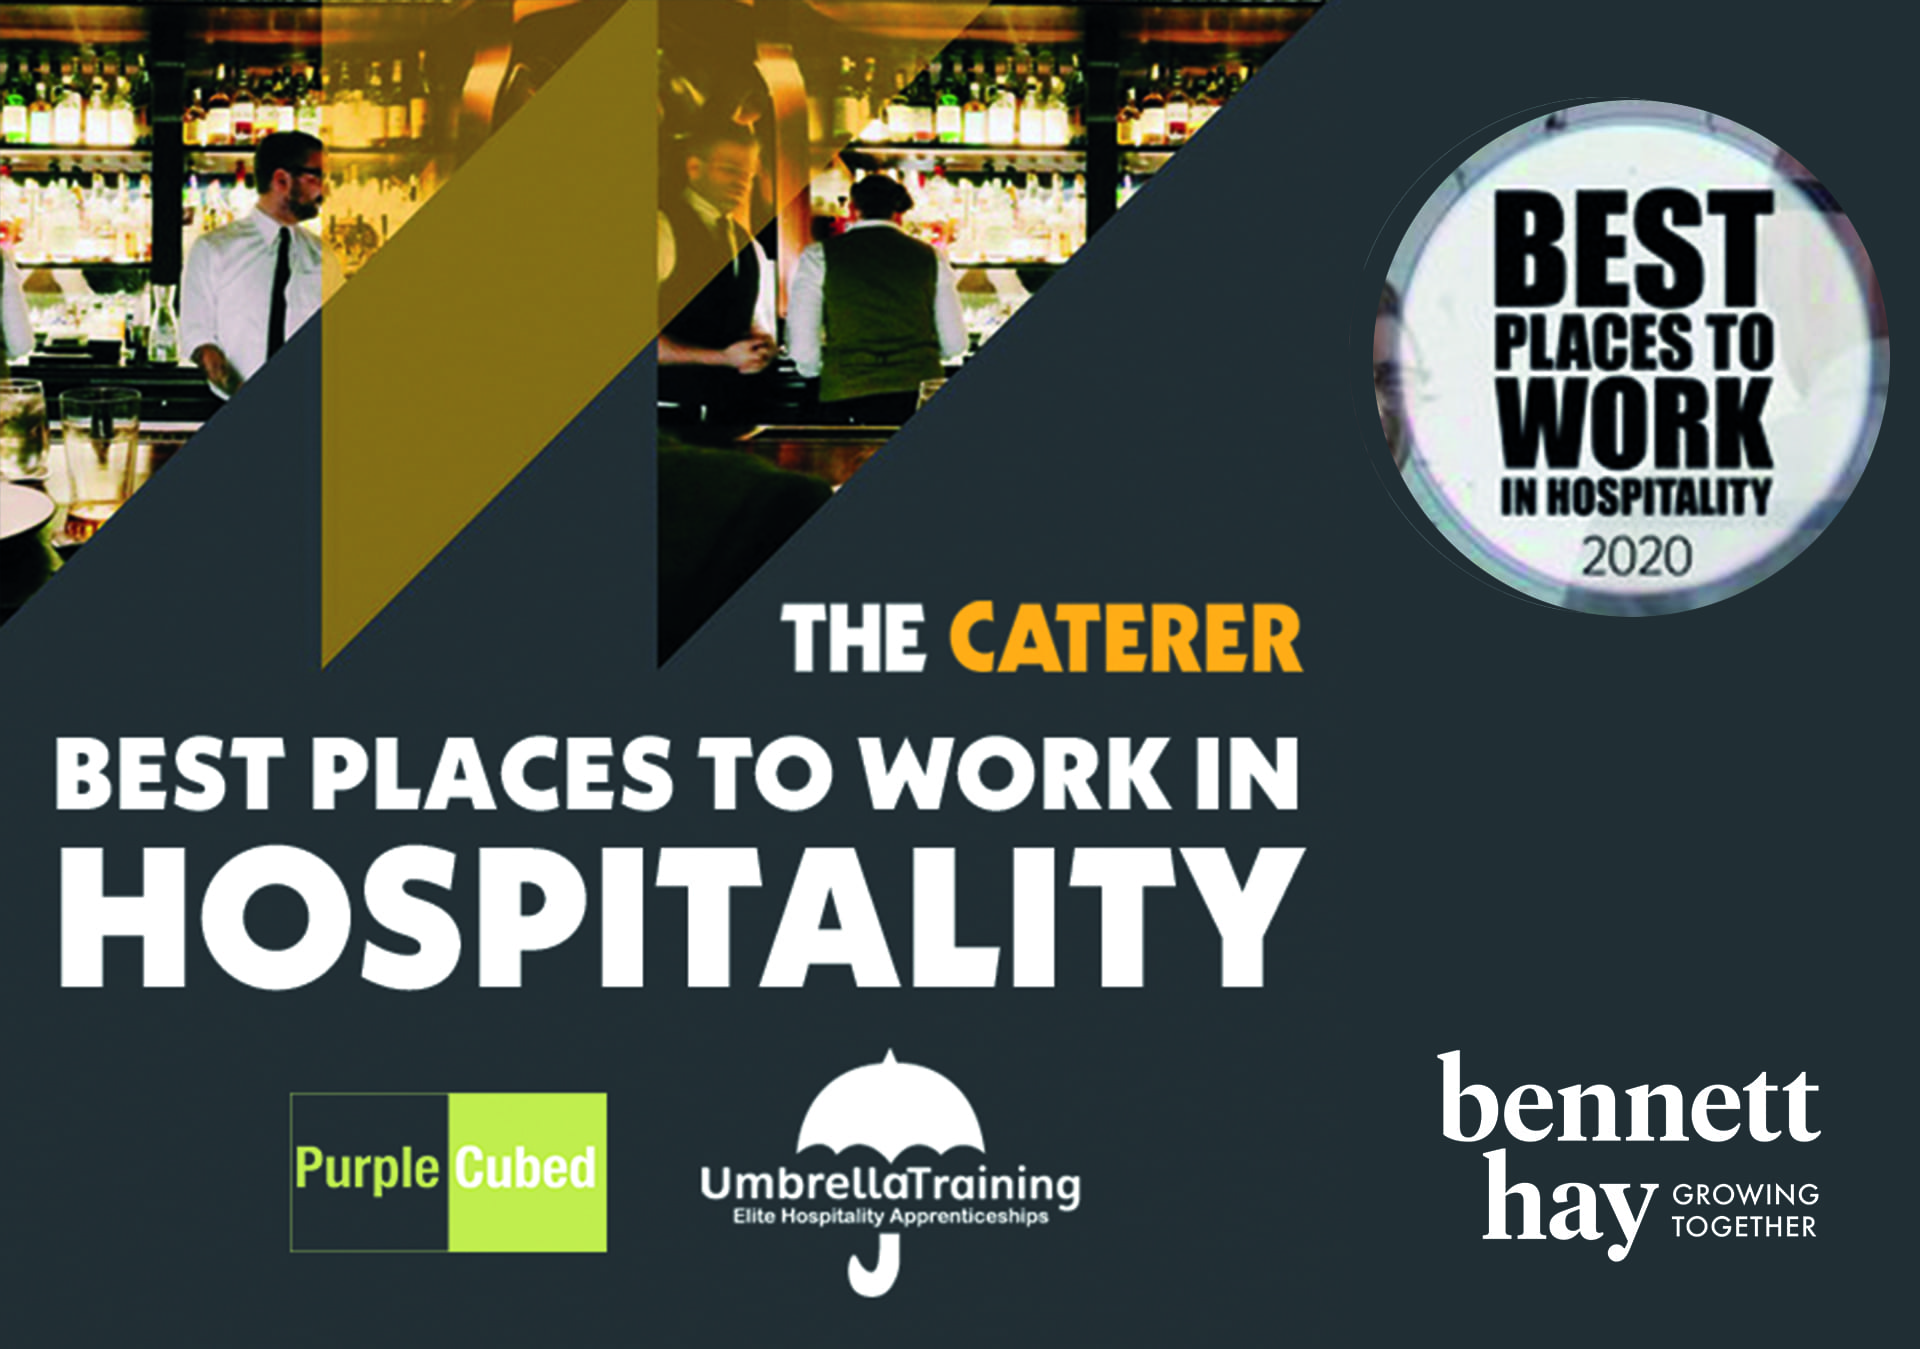 The Caterer's Best Places to Work in Hospitality 2020